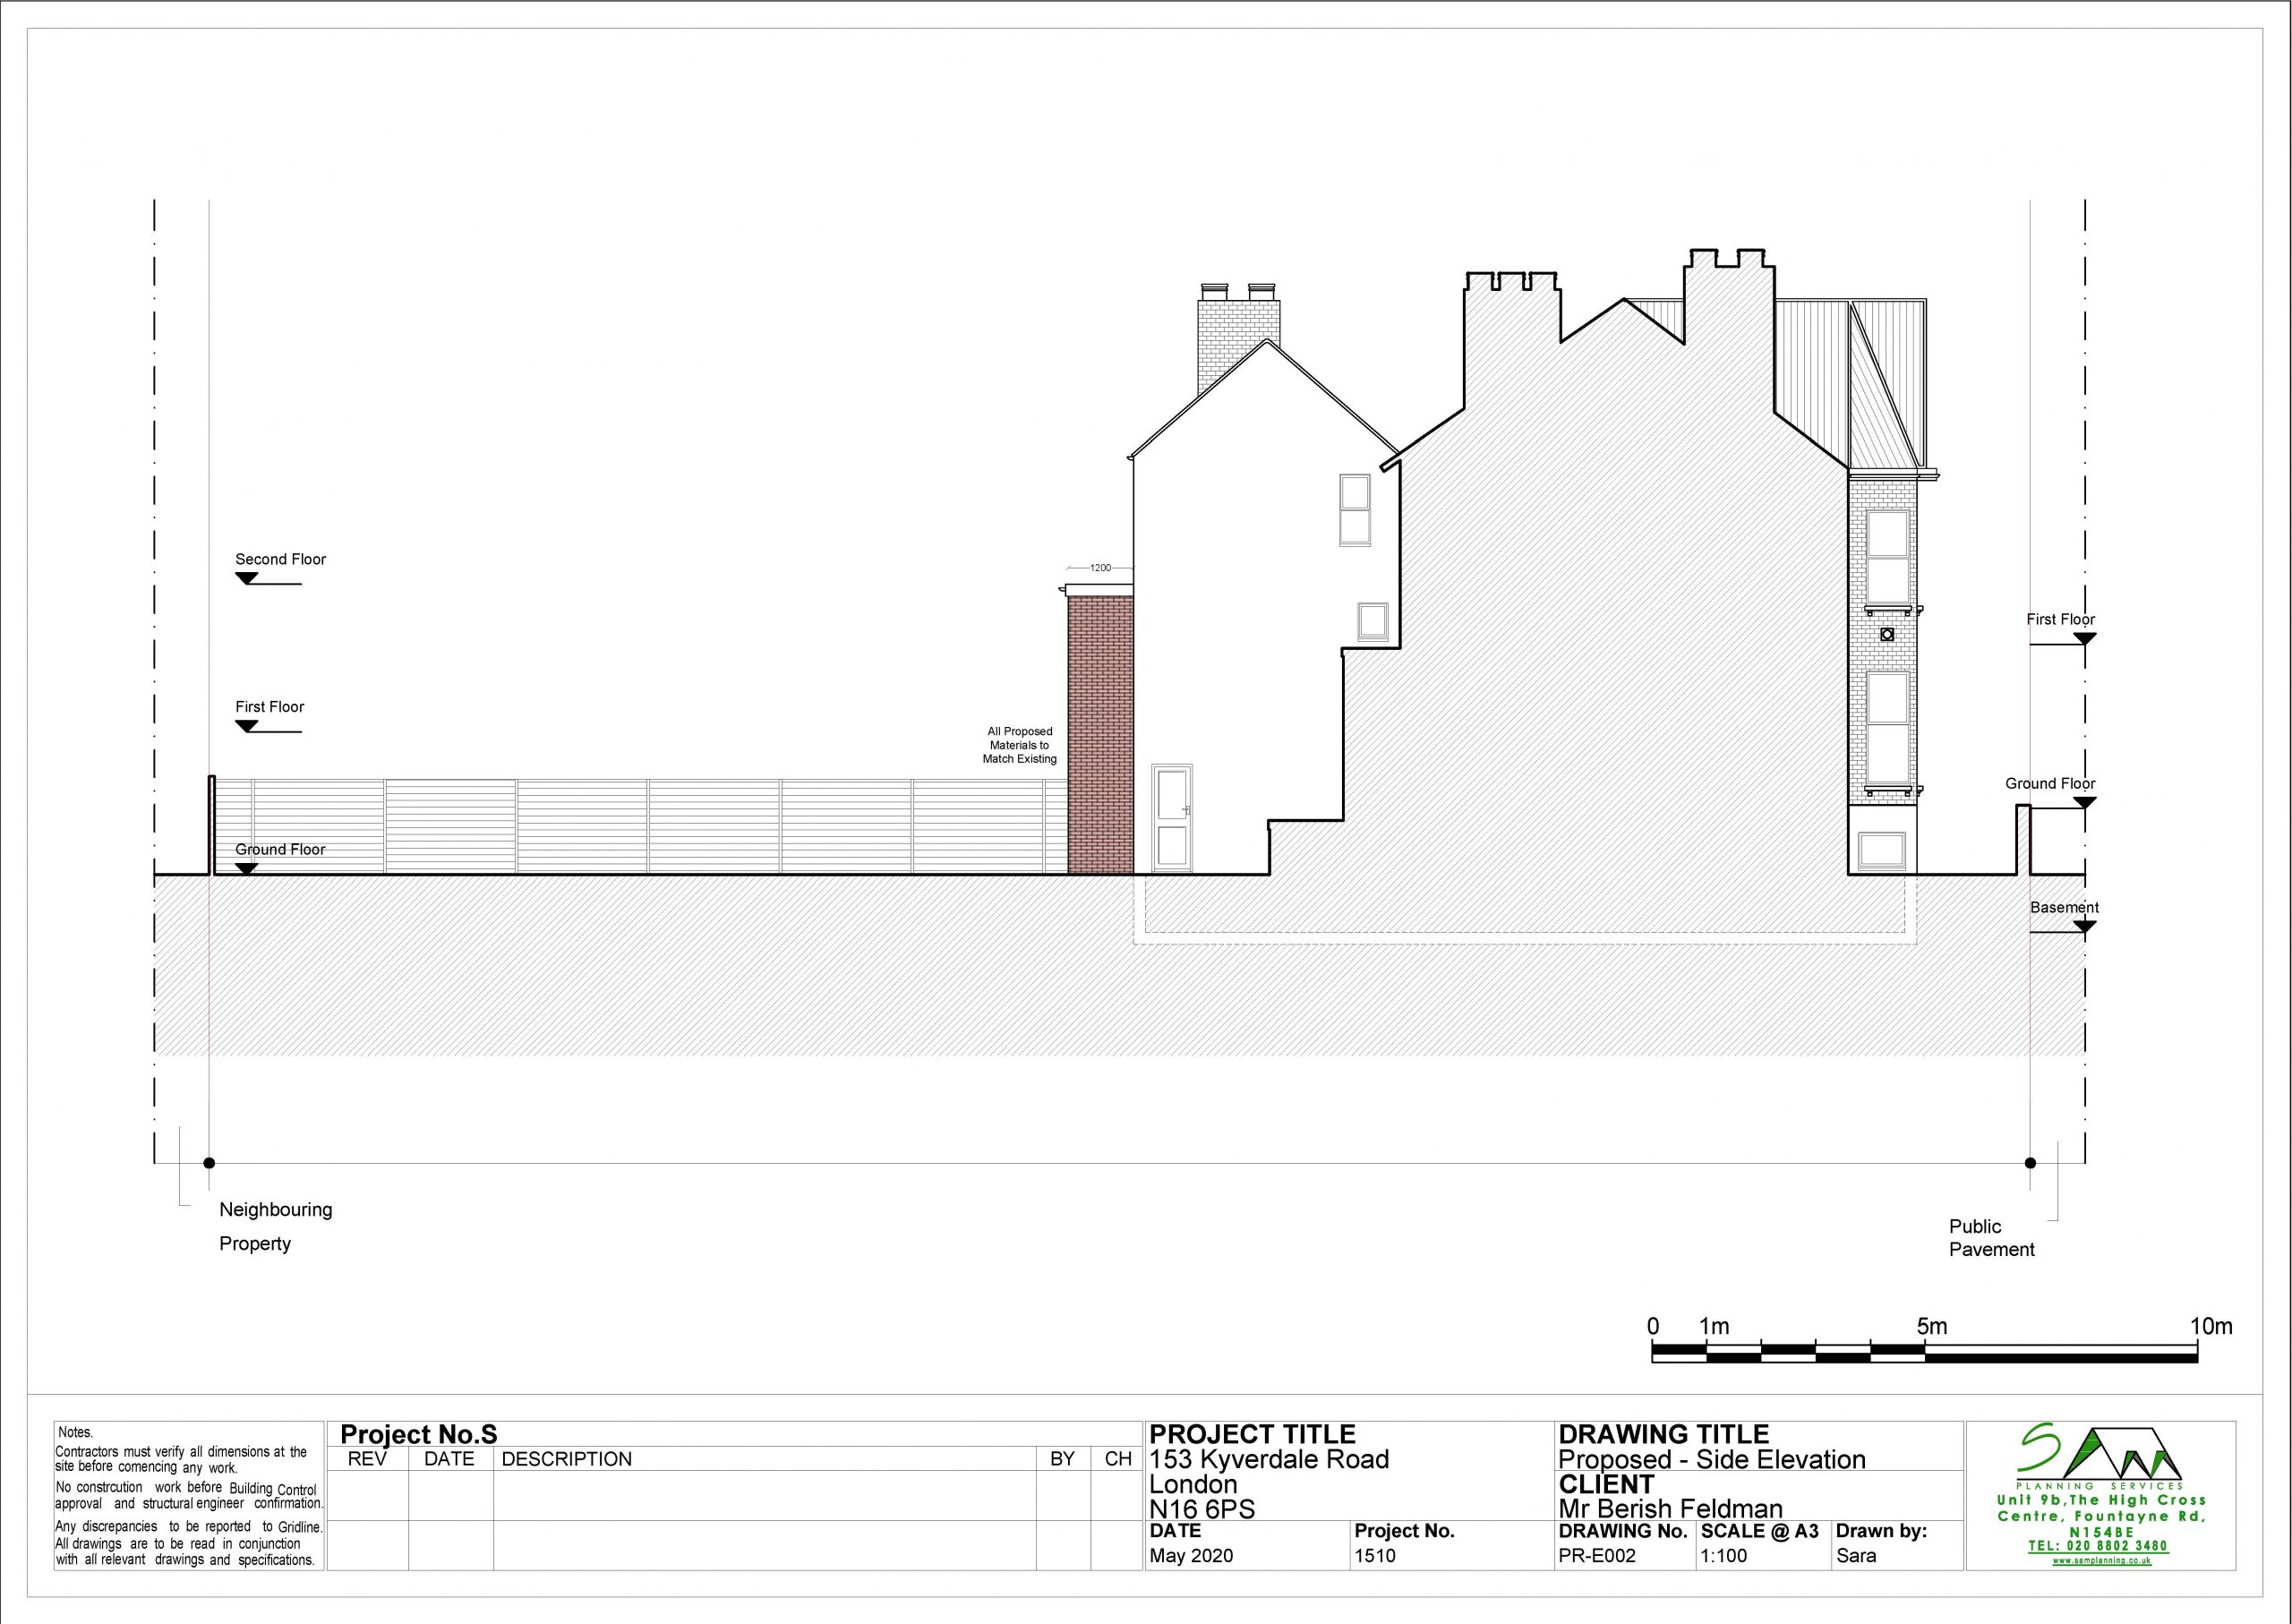 153kyverdaleProposed Side Elevation